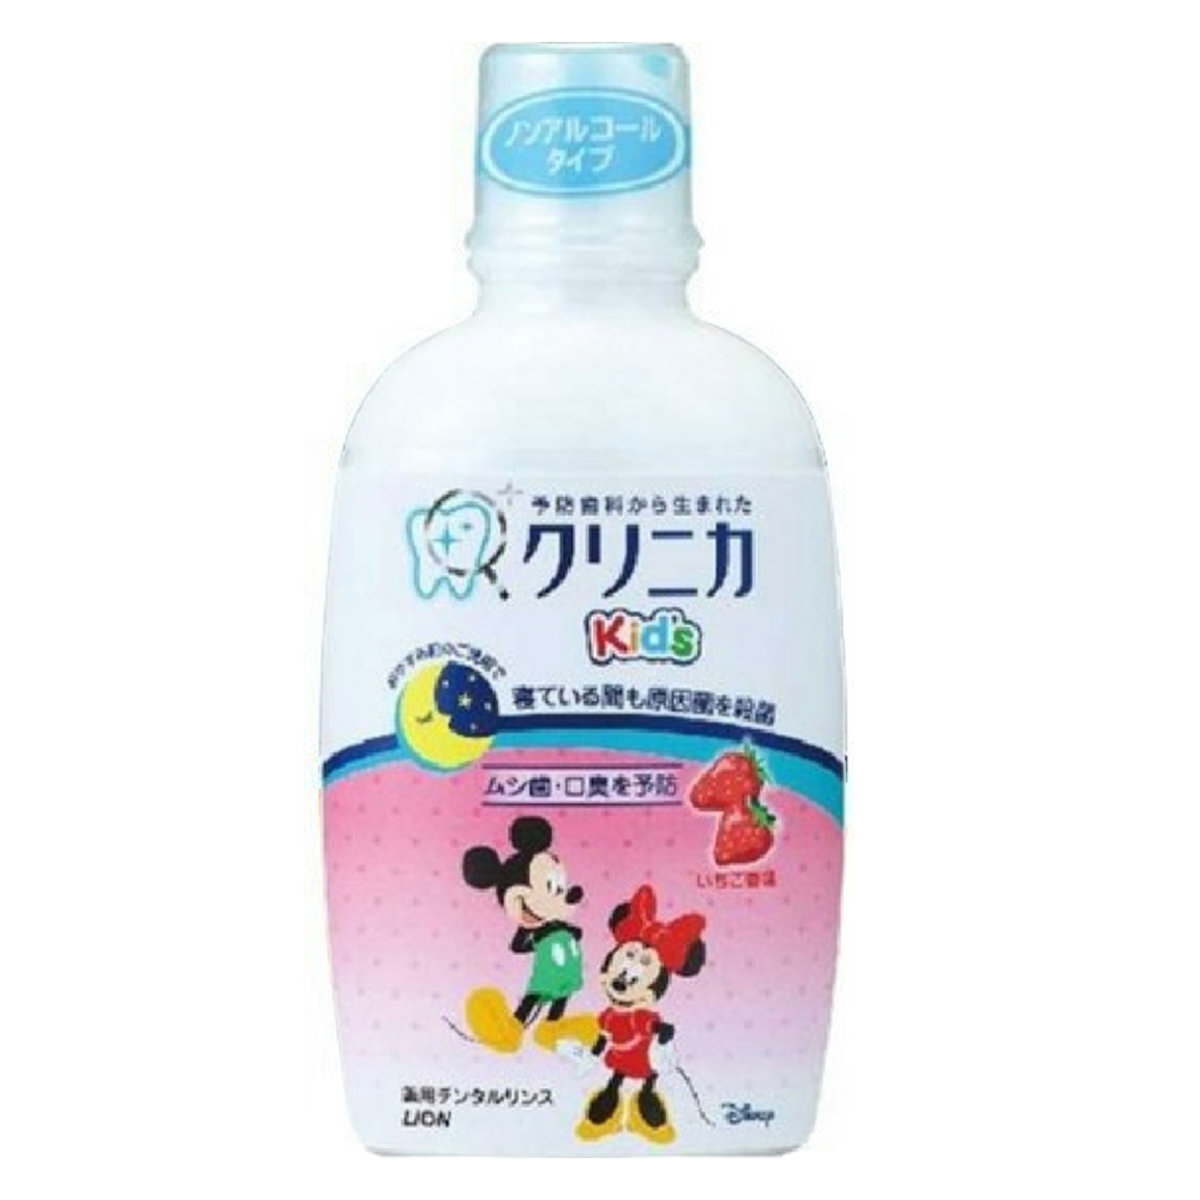 LION children's mouthwash (strawberry flavor)